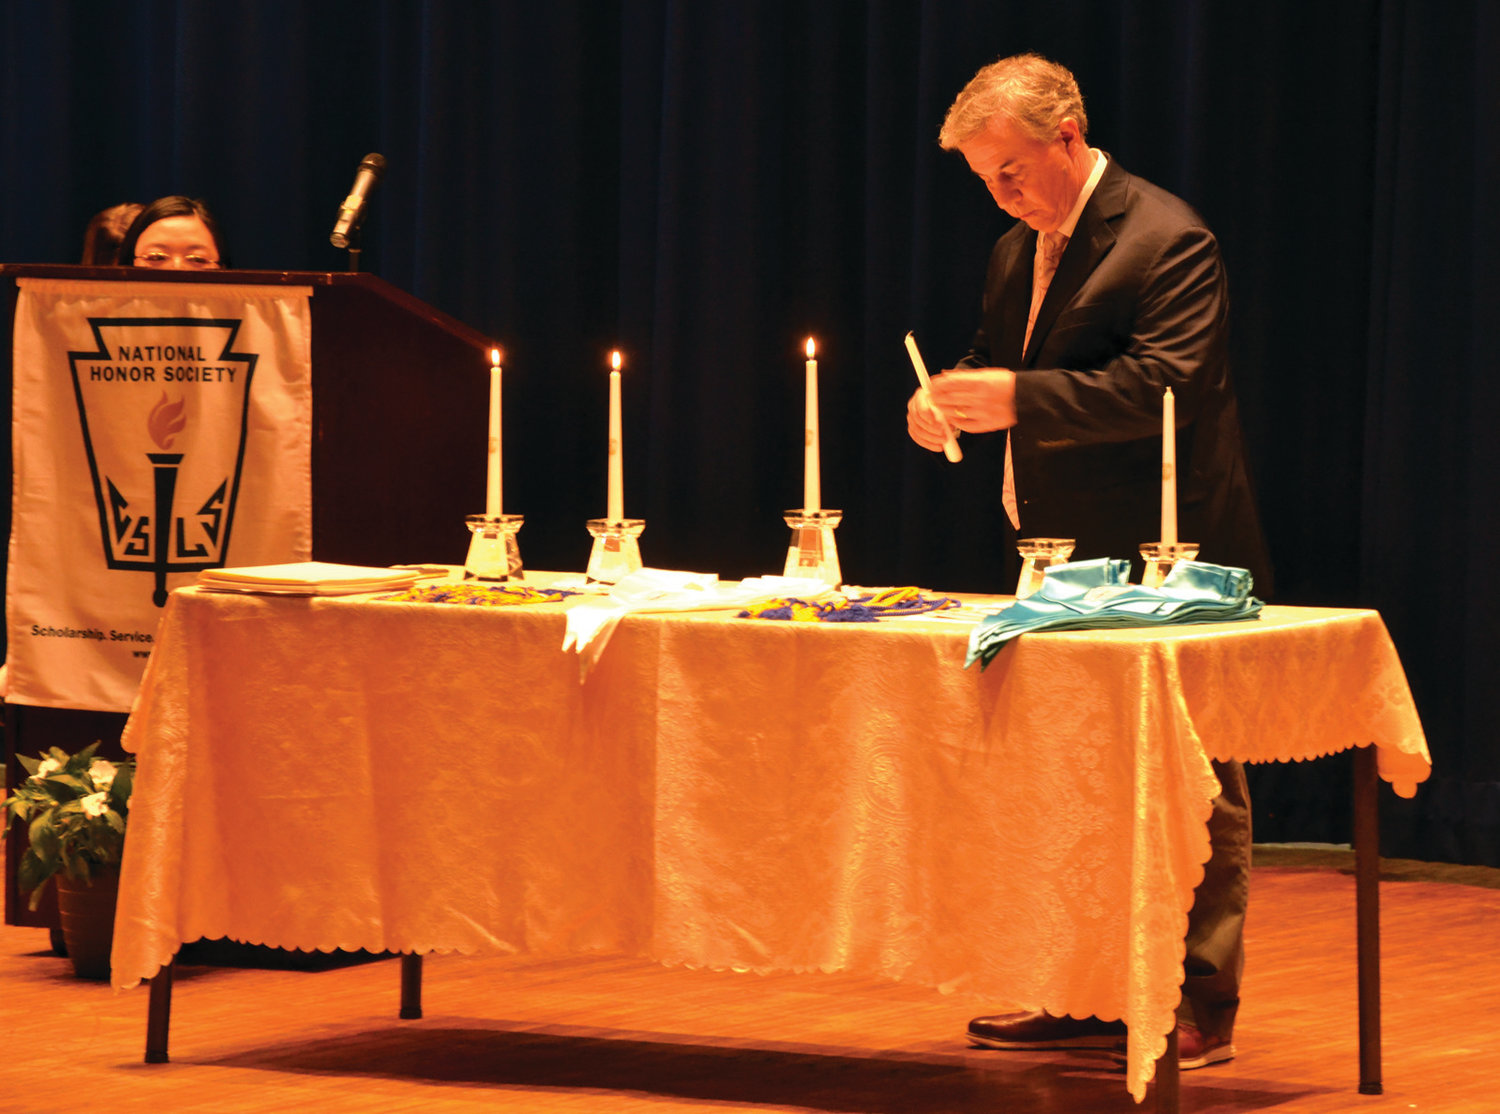 A NIGHT TO REMEMBER: History teacher Stephen Donovan lights a candle before speaking. A candle was lit for each core tenet of the National Honor Society -- character, scholarship, leadership and service